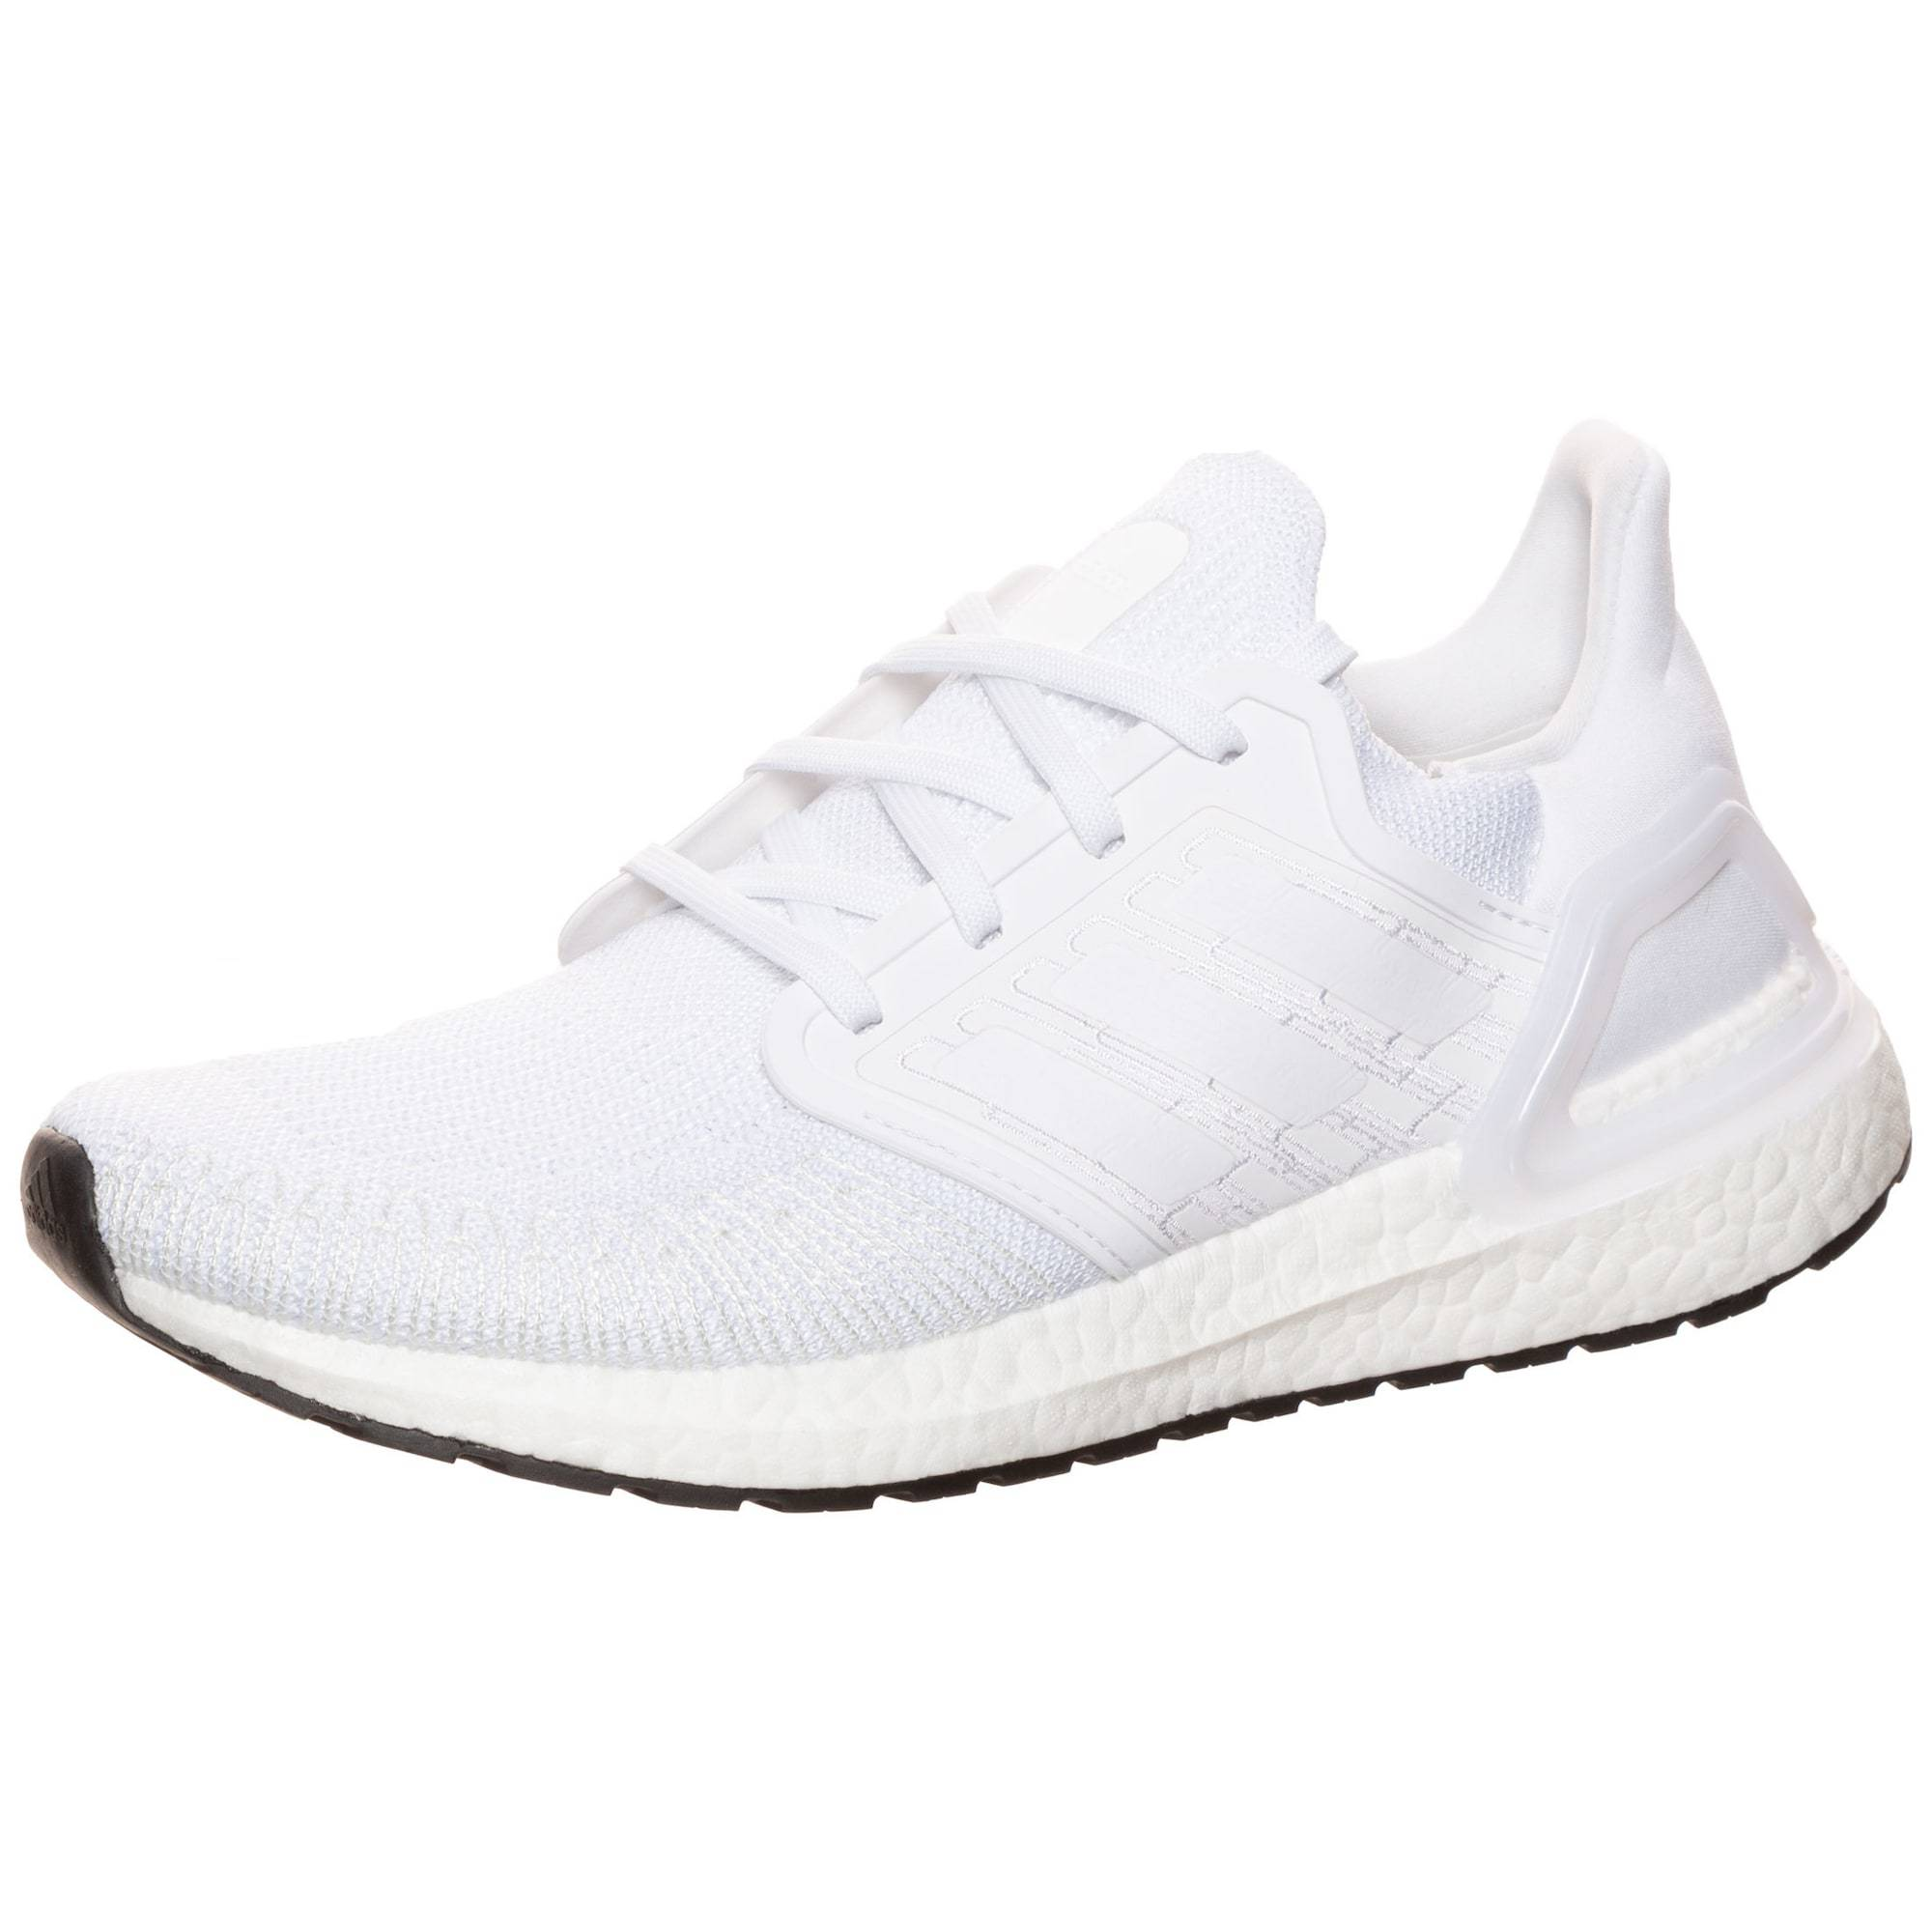 ADIDAS PERFORMANCE Chaussure de course 'ULTRABOOST 20 W'  - Blanc - Taille: 4 - female